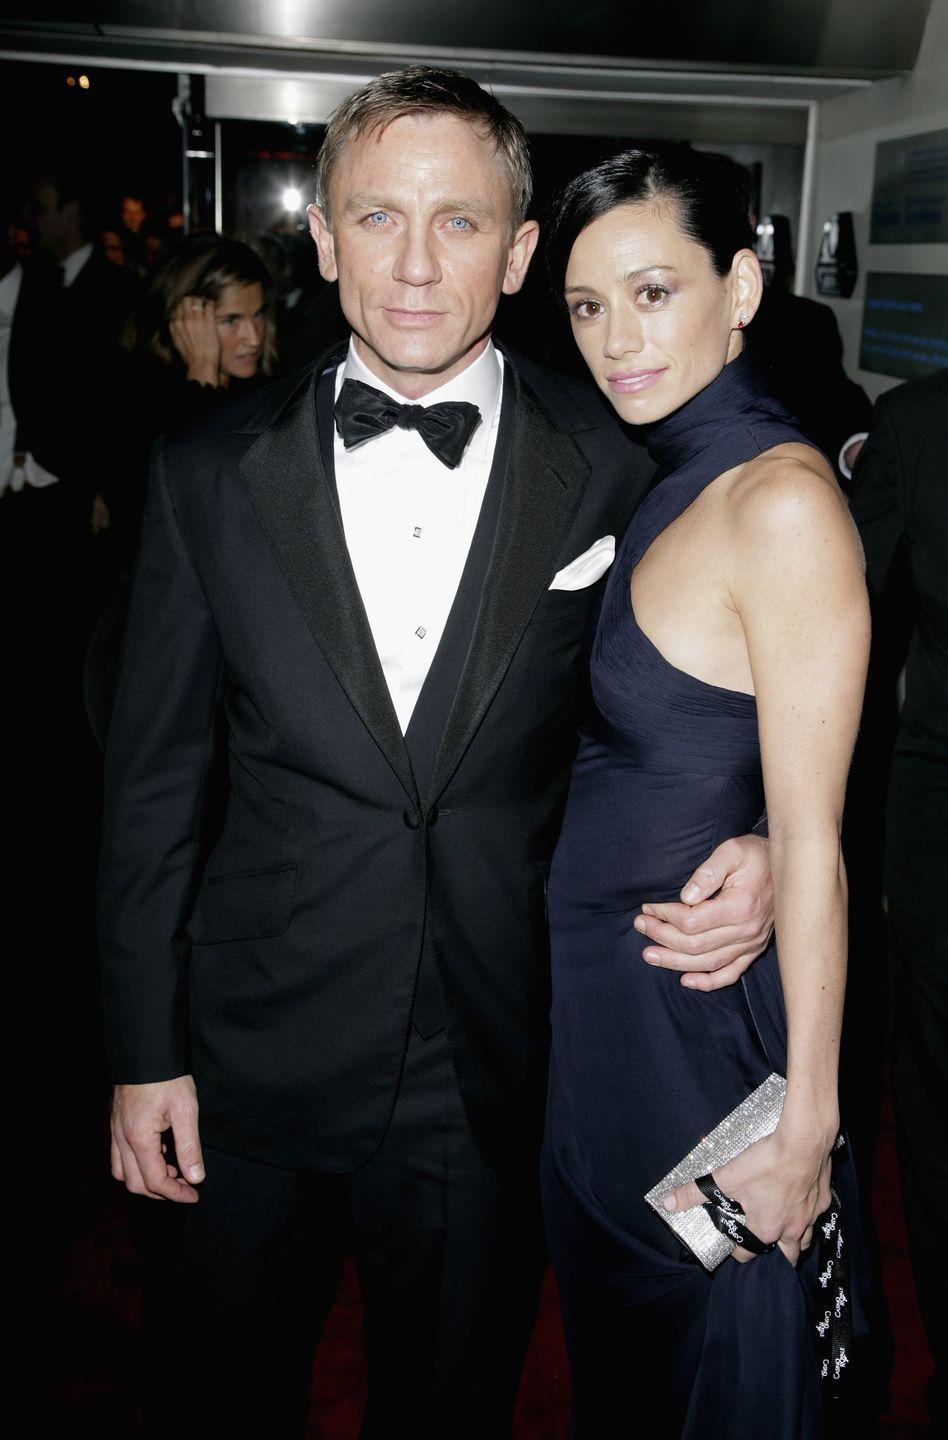 """<p>The James Bond actor proposed in 2007 after six years together but <a href=""""http://www.dailymail.co.uk/tvshowbiz/article-2010478/Family-fiancee-Daniel-Craig-dumped-reveal-left-torment.html"""" rel=""""nofollow noopener"""" target=""""_blank"""" data-ylk=""""slk:the wedding was called off"""" class=""""link rapid-noclick-resp"""">the wedding was called off</a> in 2011 just before Craig married Rachel Weisz. """"We heard about it like everyone else, by reading the newspapers,"""" Mitchell's father said. </p>"""